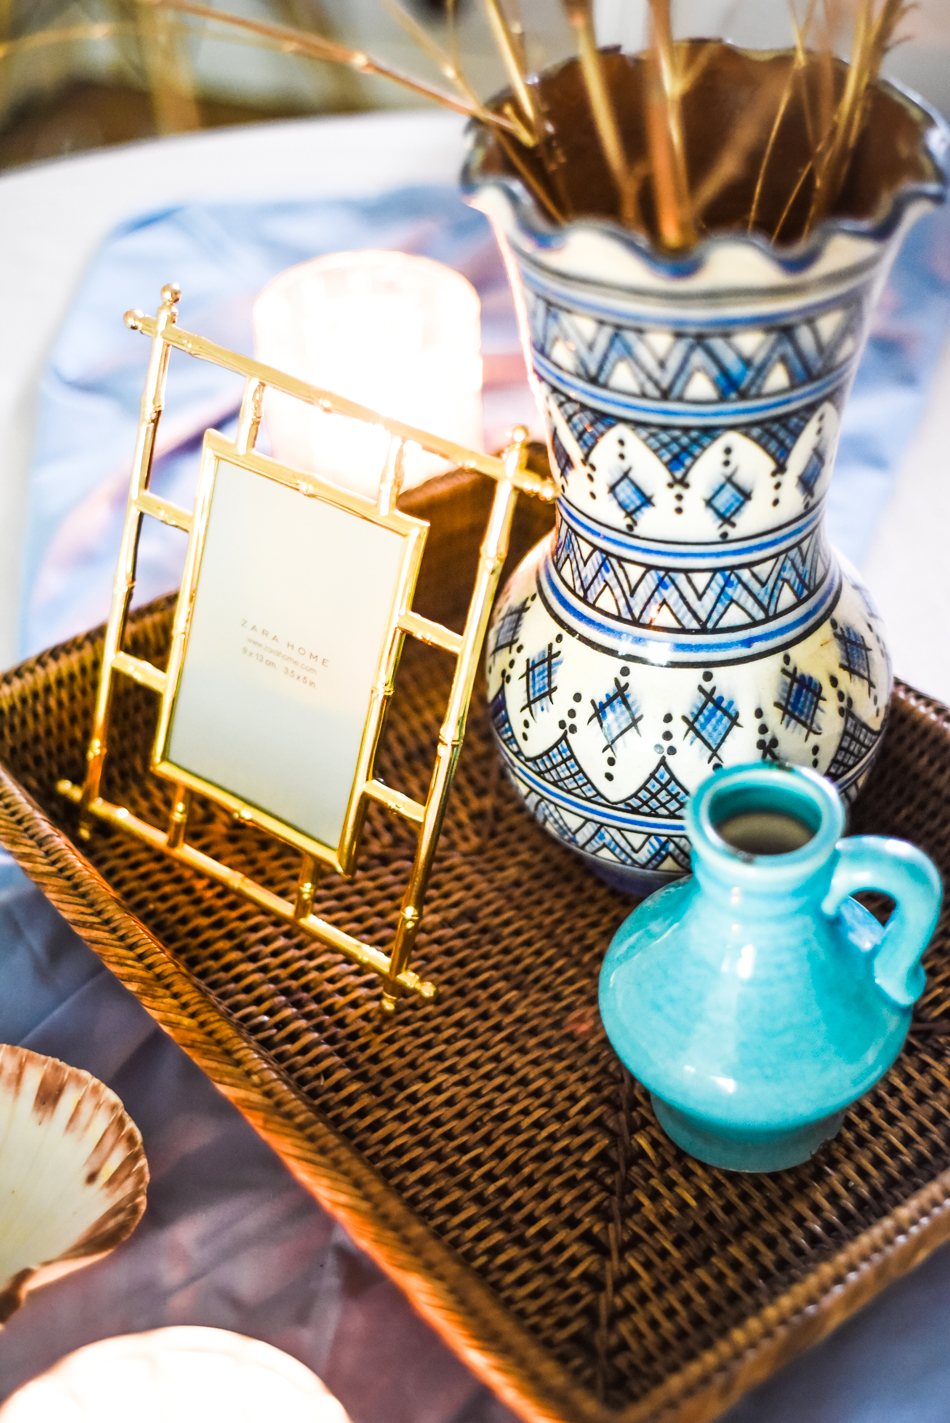 Summer-House-Feeling-With-Blue-and-gold-Decor-AnaisStoelen-18.jpg